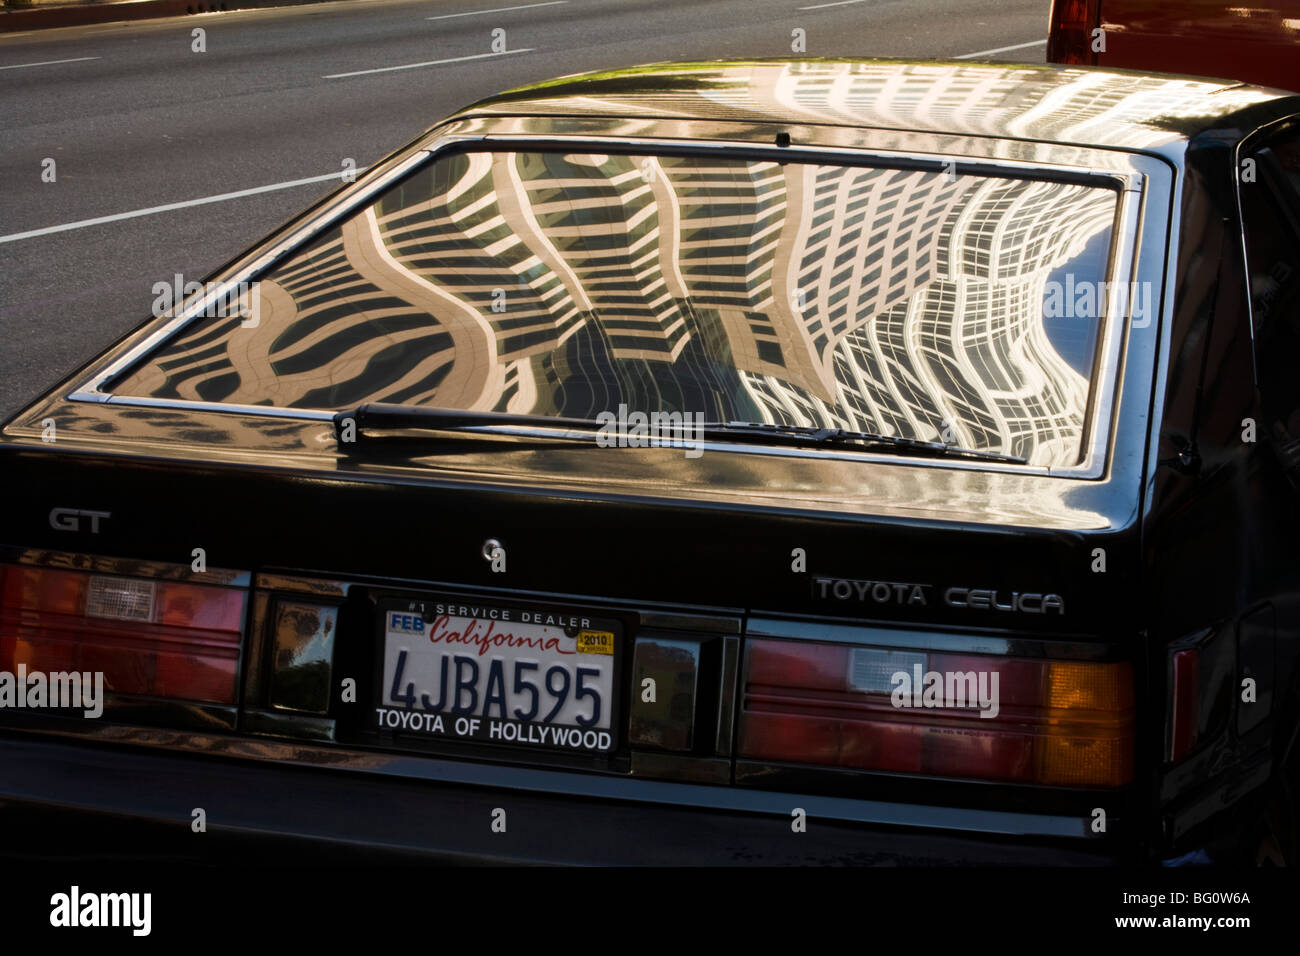 downtown buildings on Figueroa reflecting in a window of a car, Los Angeles, California, United States of America Stock Photo